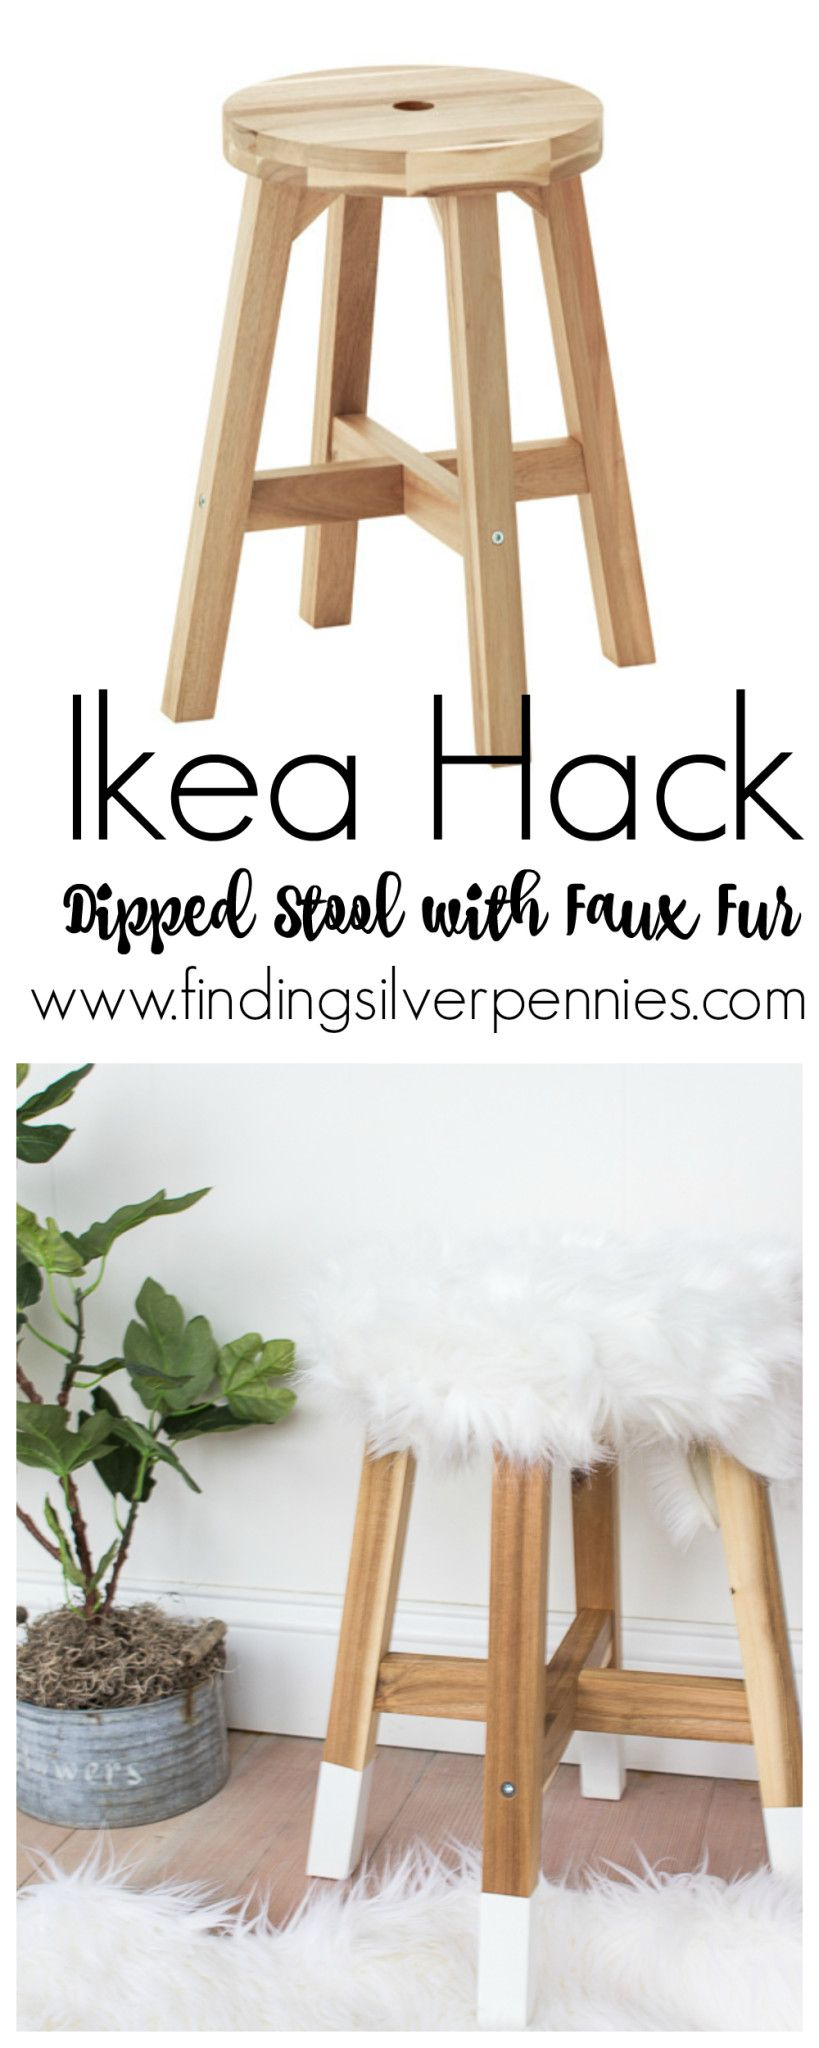 5 Ikea Hacks (and An Exciting Announcement!)